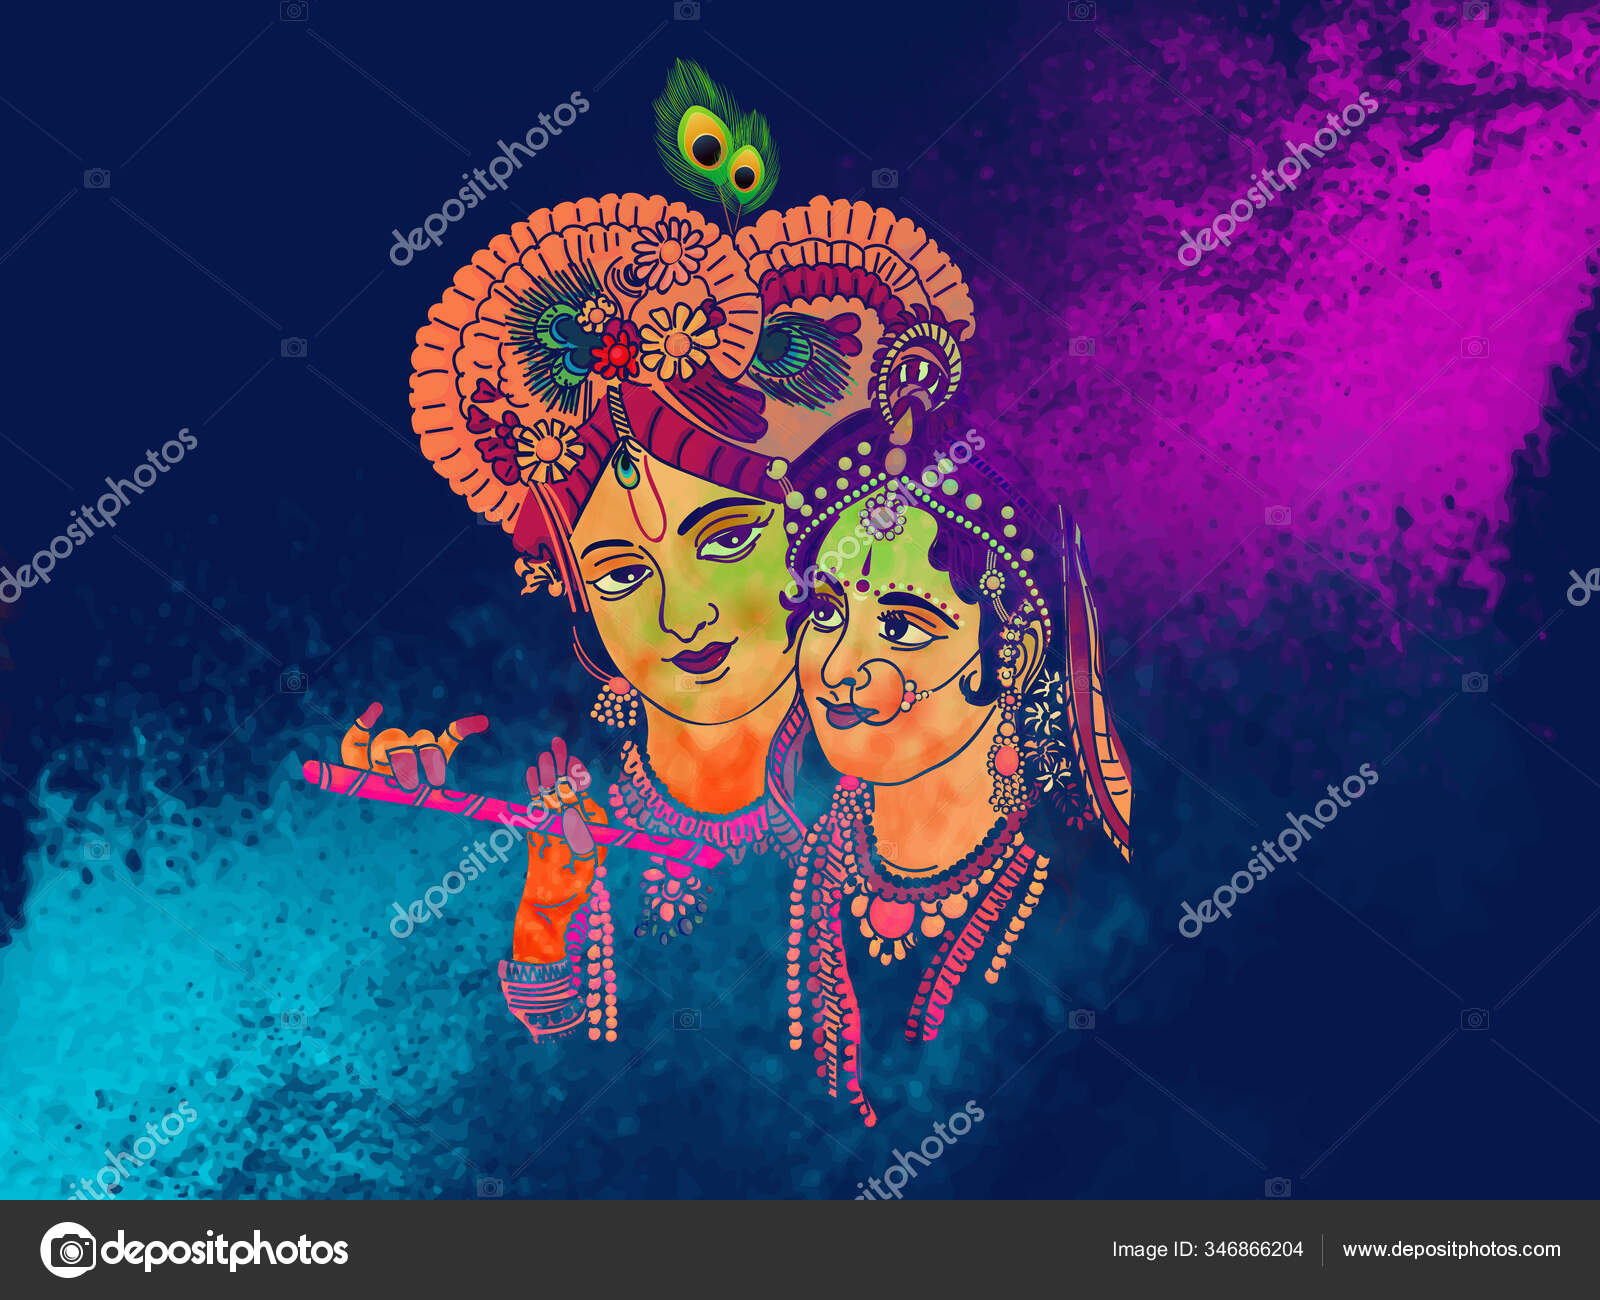 depositphotos 346866204 stock illustration radhe krishna illustration colorful holi